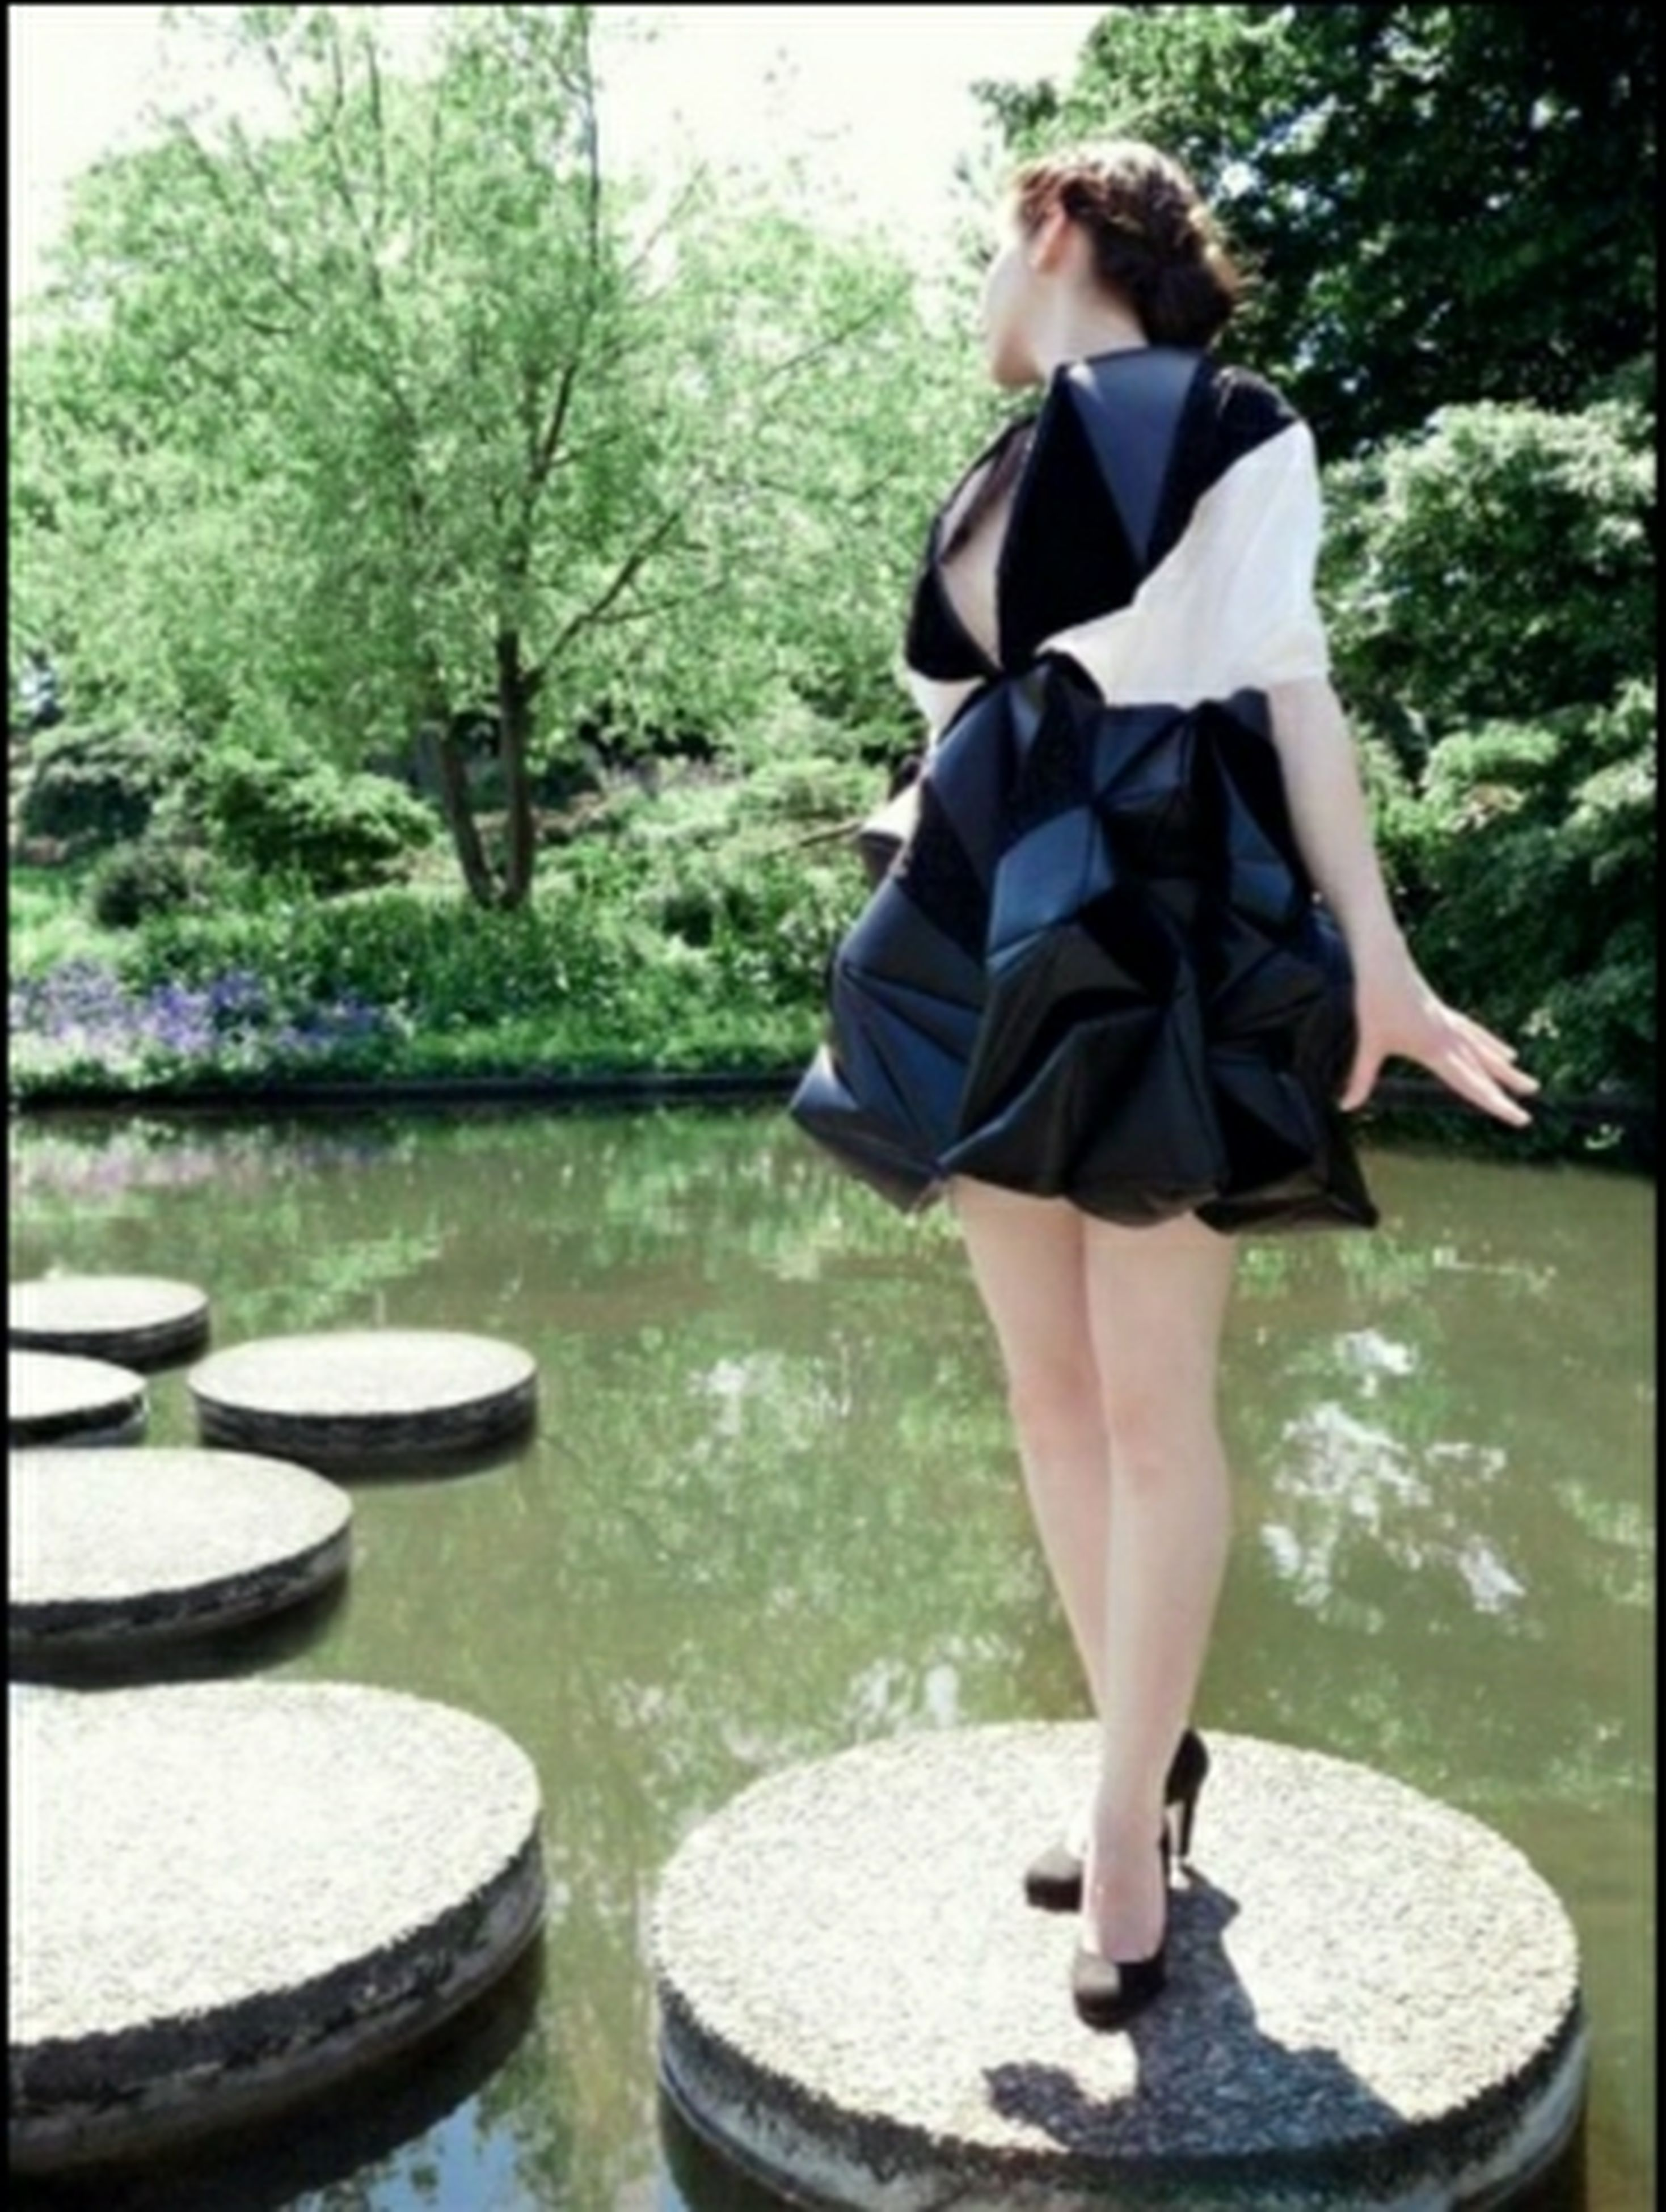 casual clothing, lifestyles, tree, standing, water, leisure activity, full length, rear view, young adult, day, outdoors, person, sitting, side view, low section, dress, young women